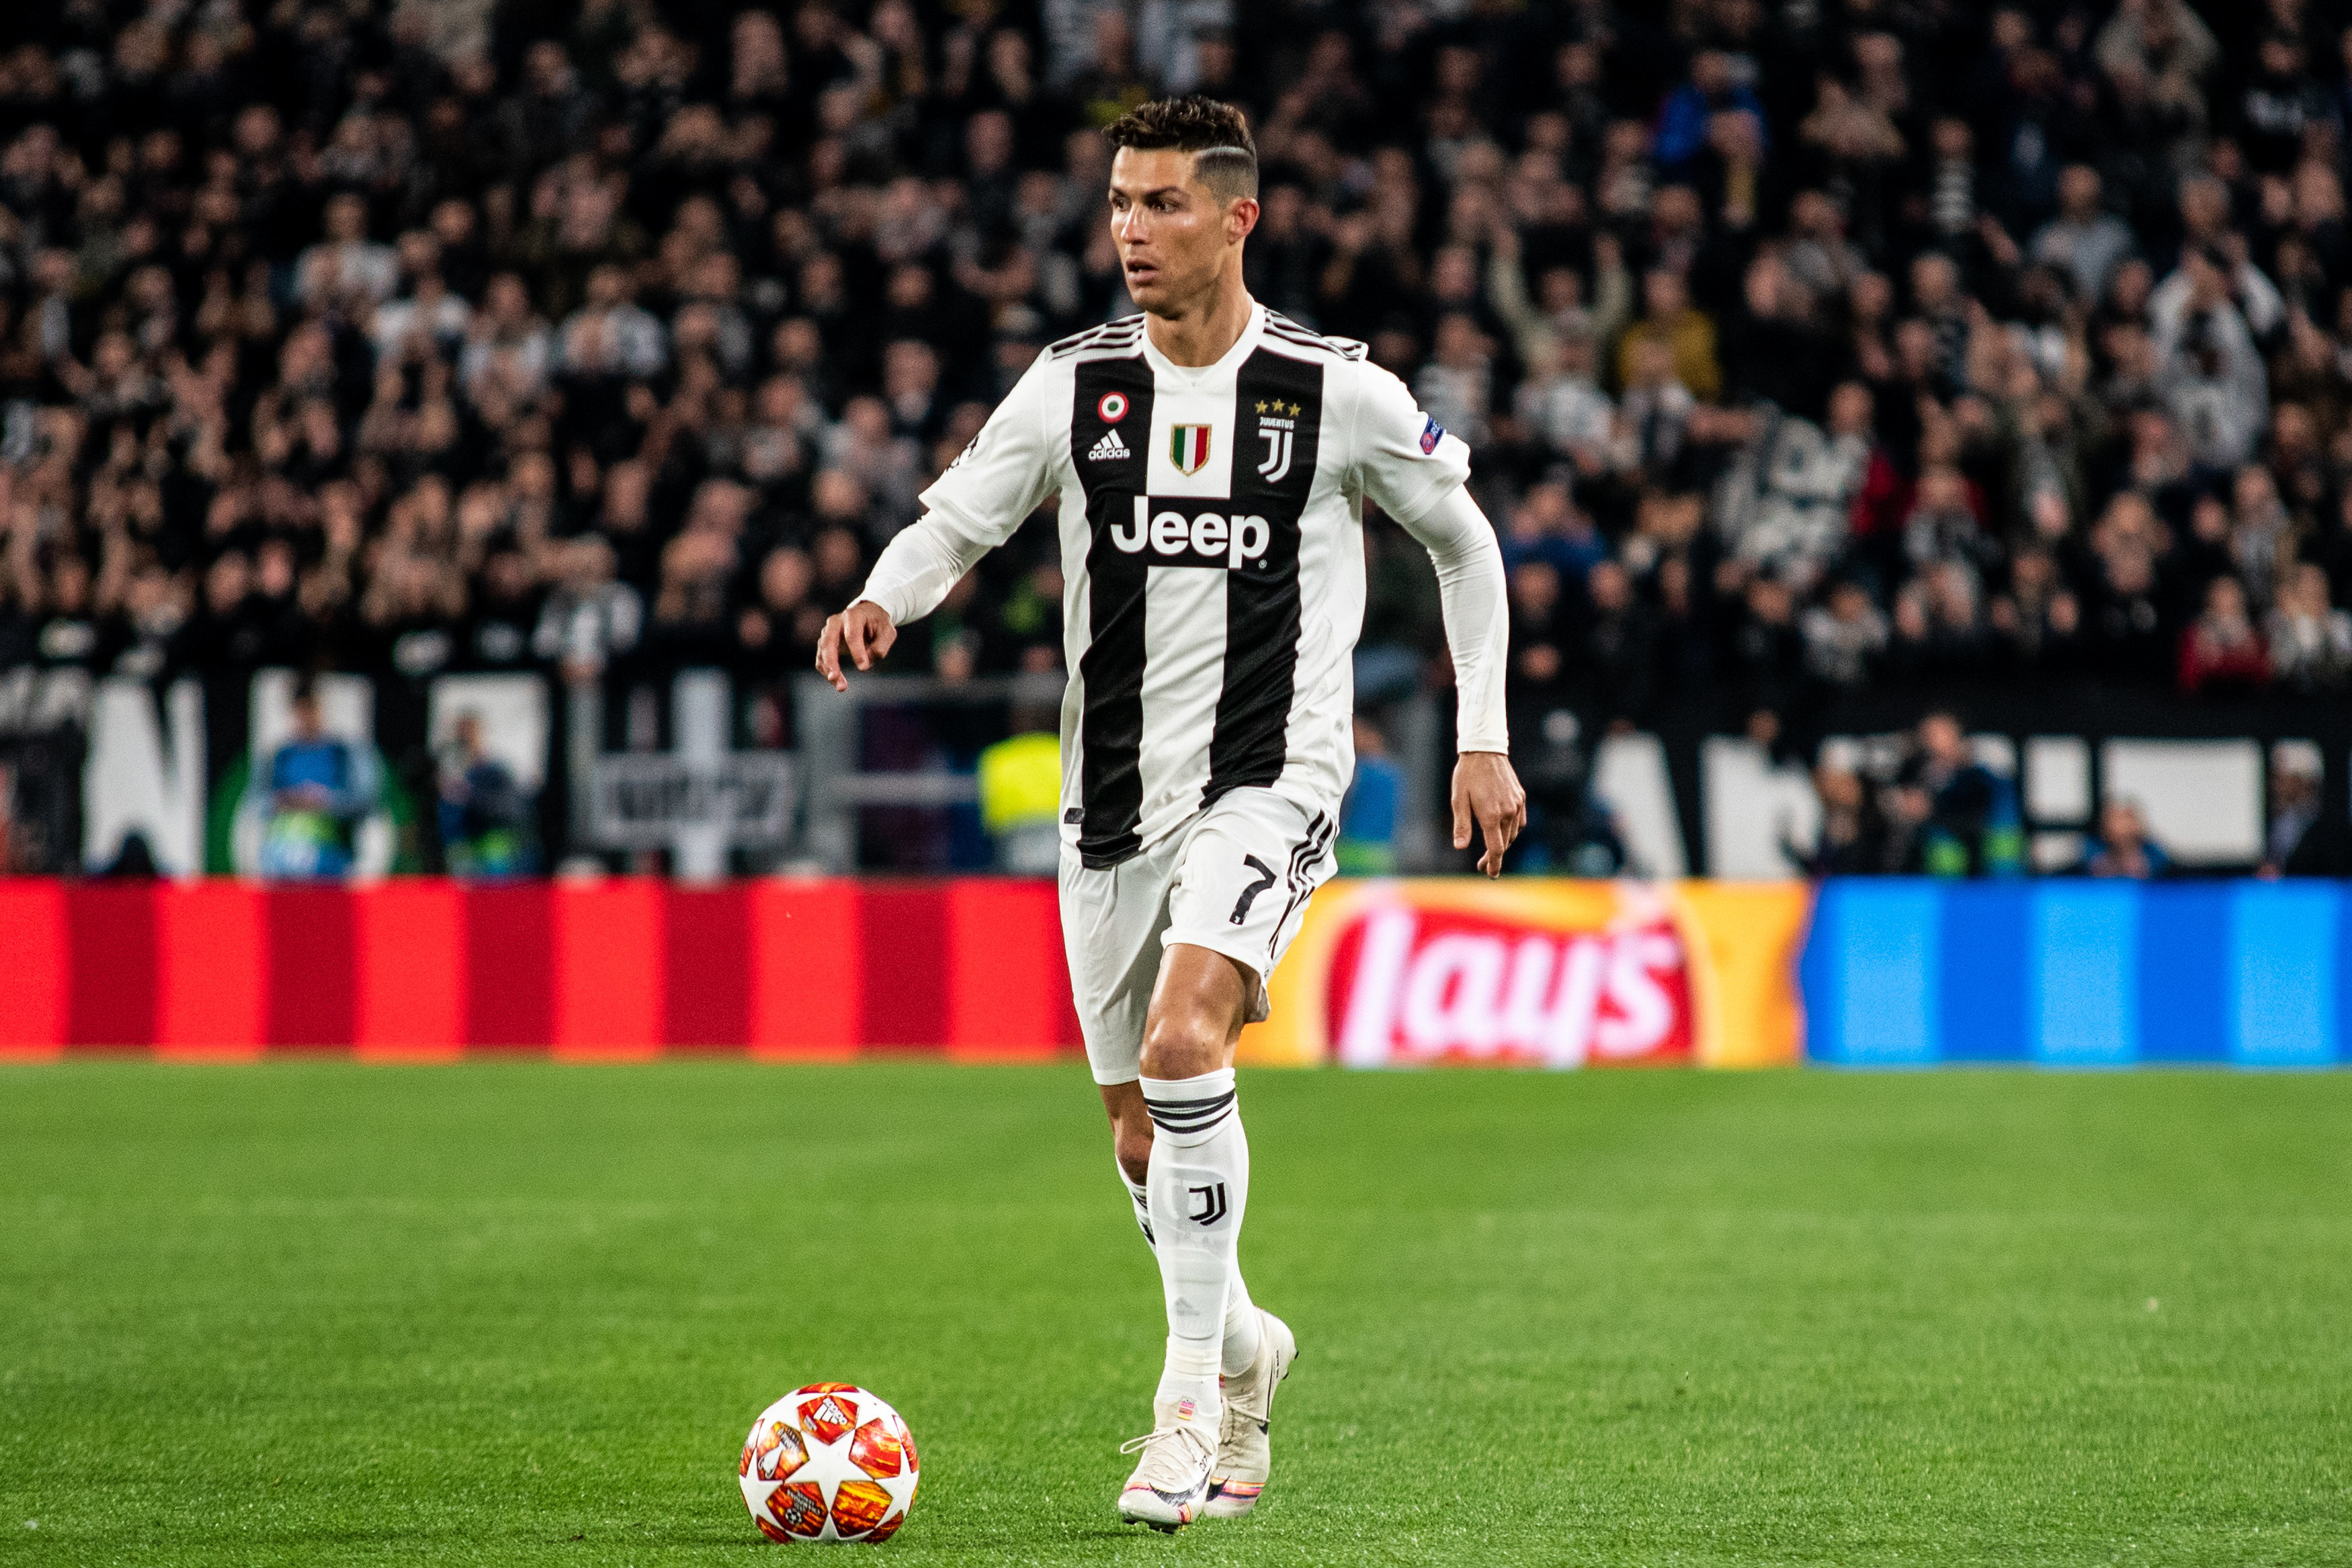 Cristiano Ronaldo: Juventus star reveals transfer decision after Champions League woe